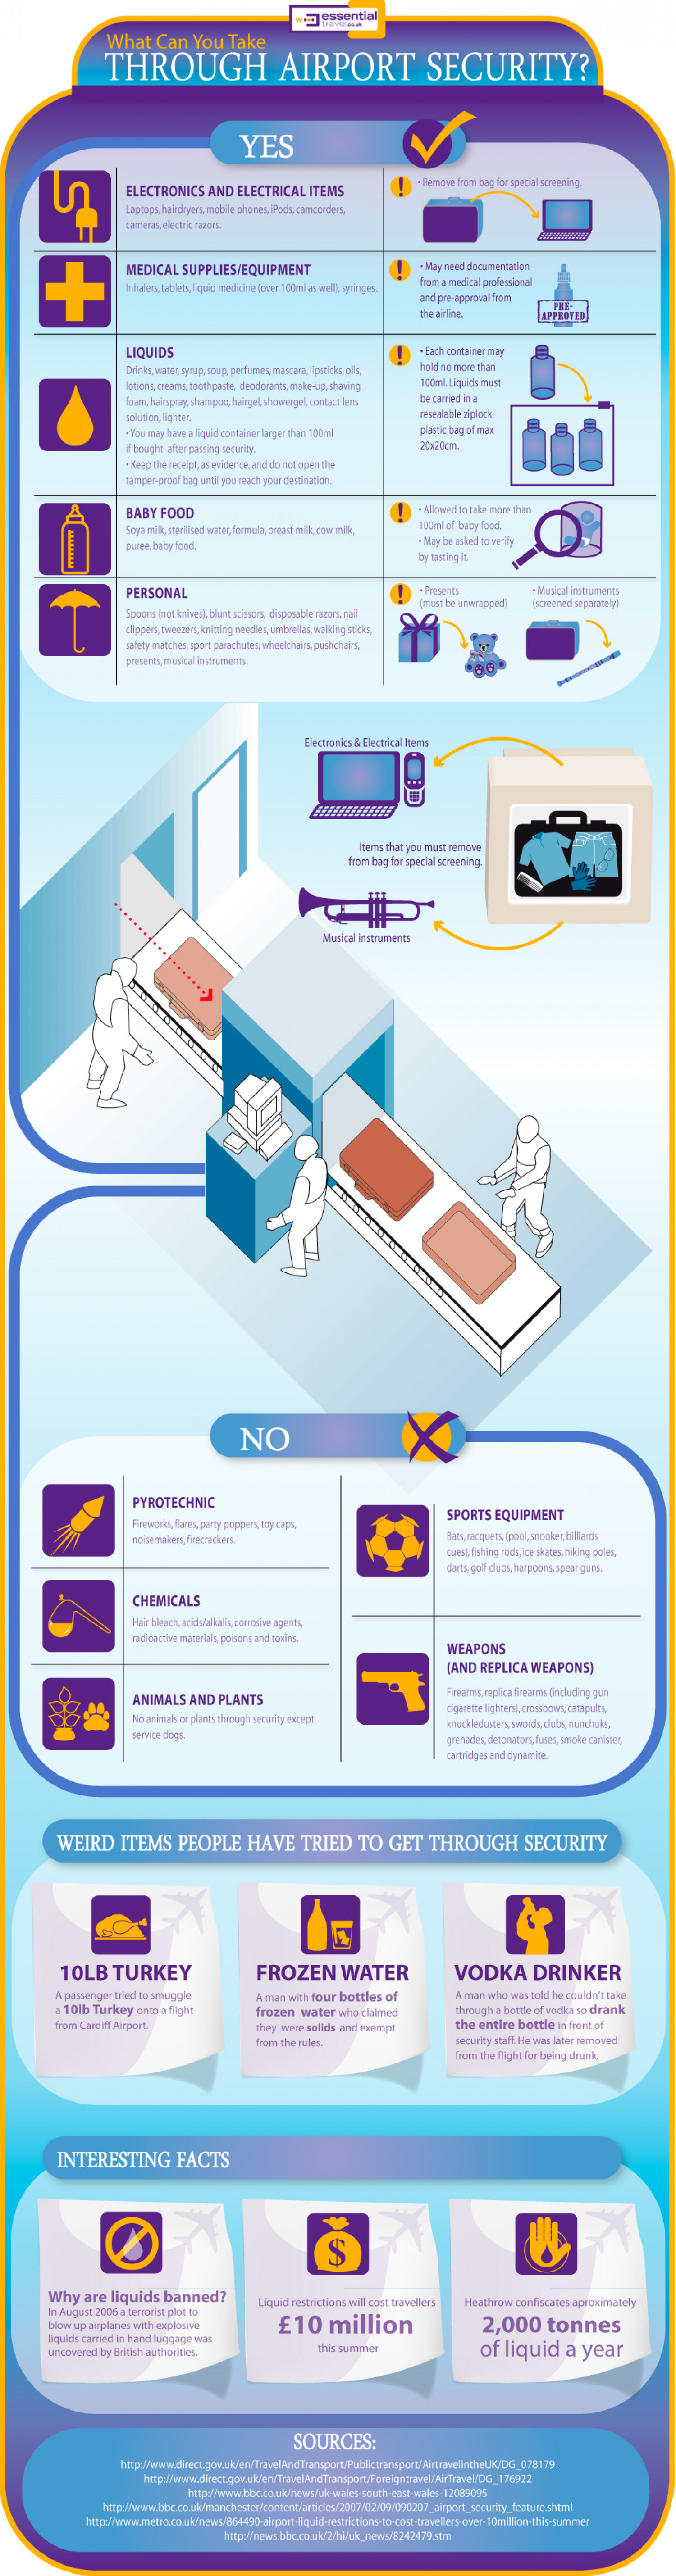 What Can You Take Through Airport Security? Infographic